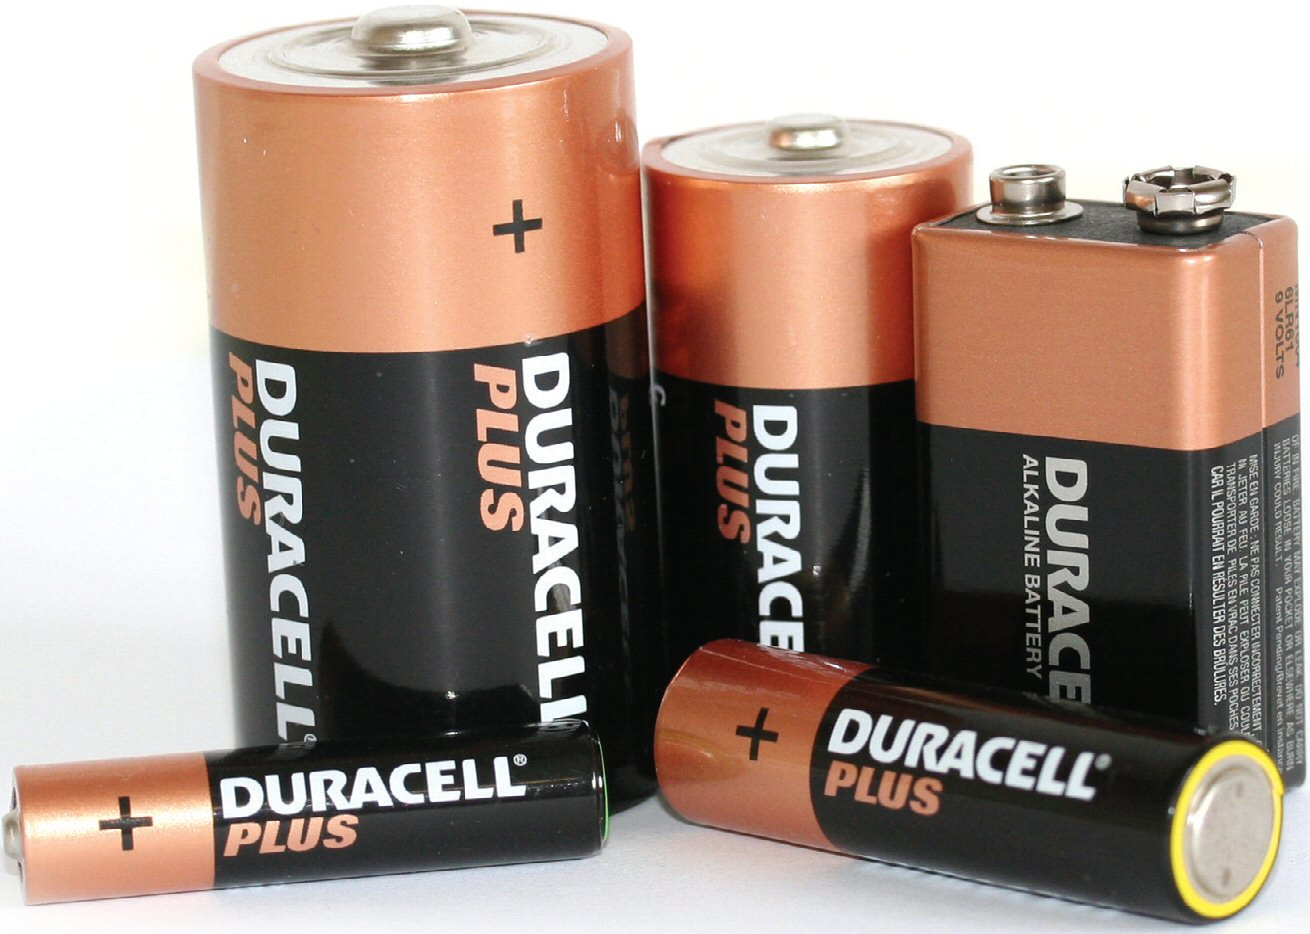 duracell batteries photo co comparestoreprices co uk Duracell Batteries only $.99 at Walgreens! Saves you $4!